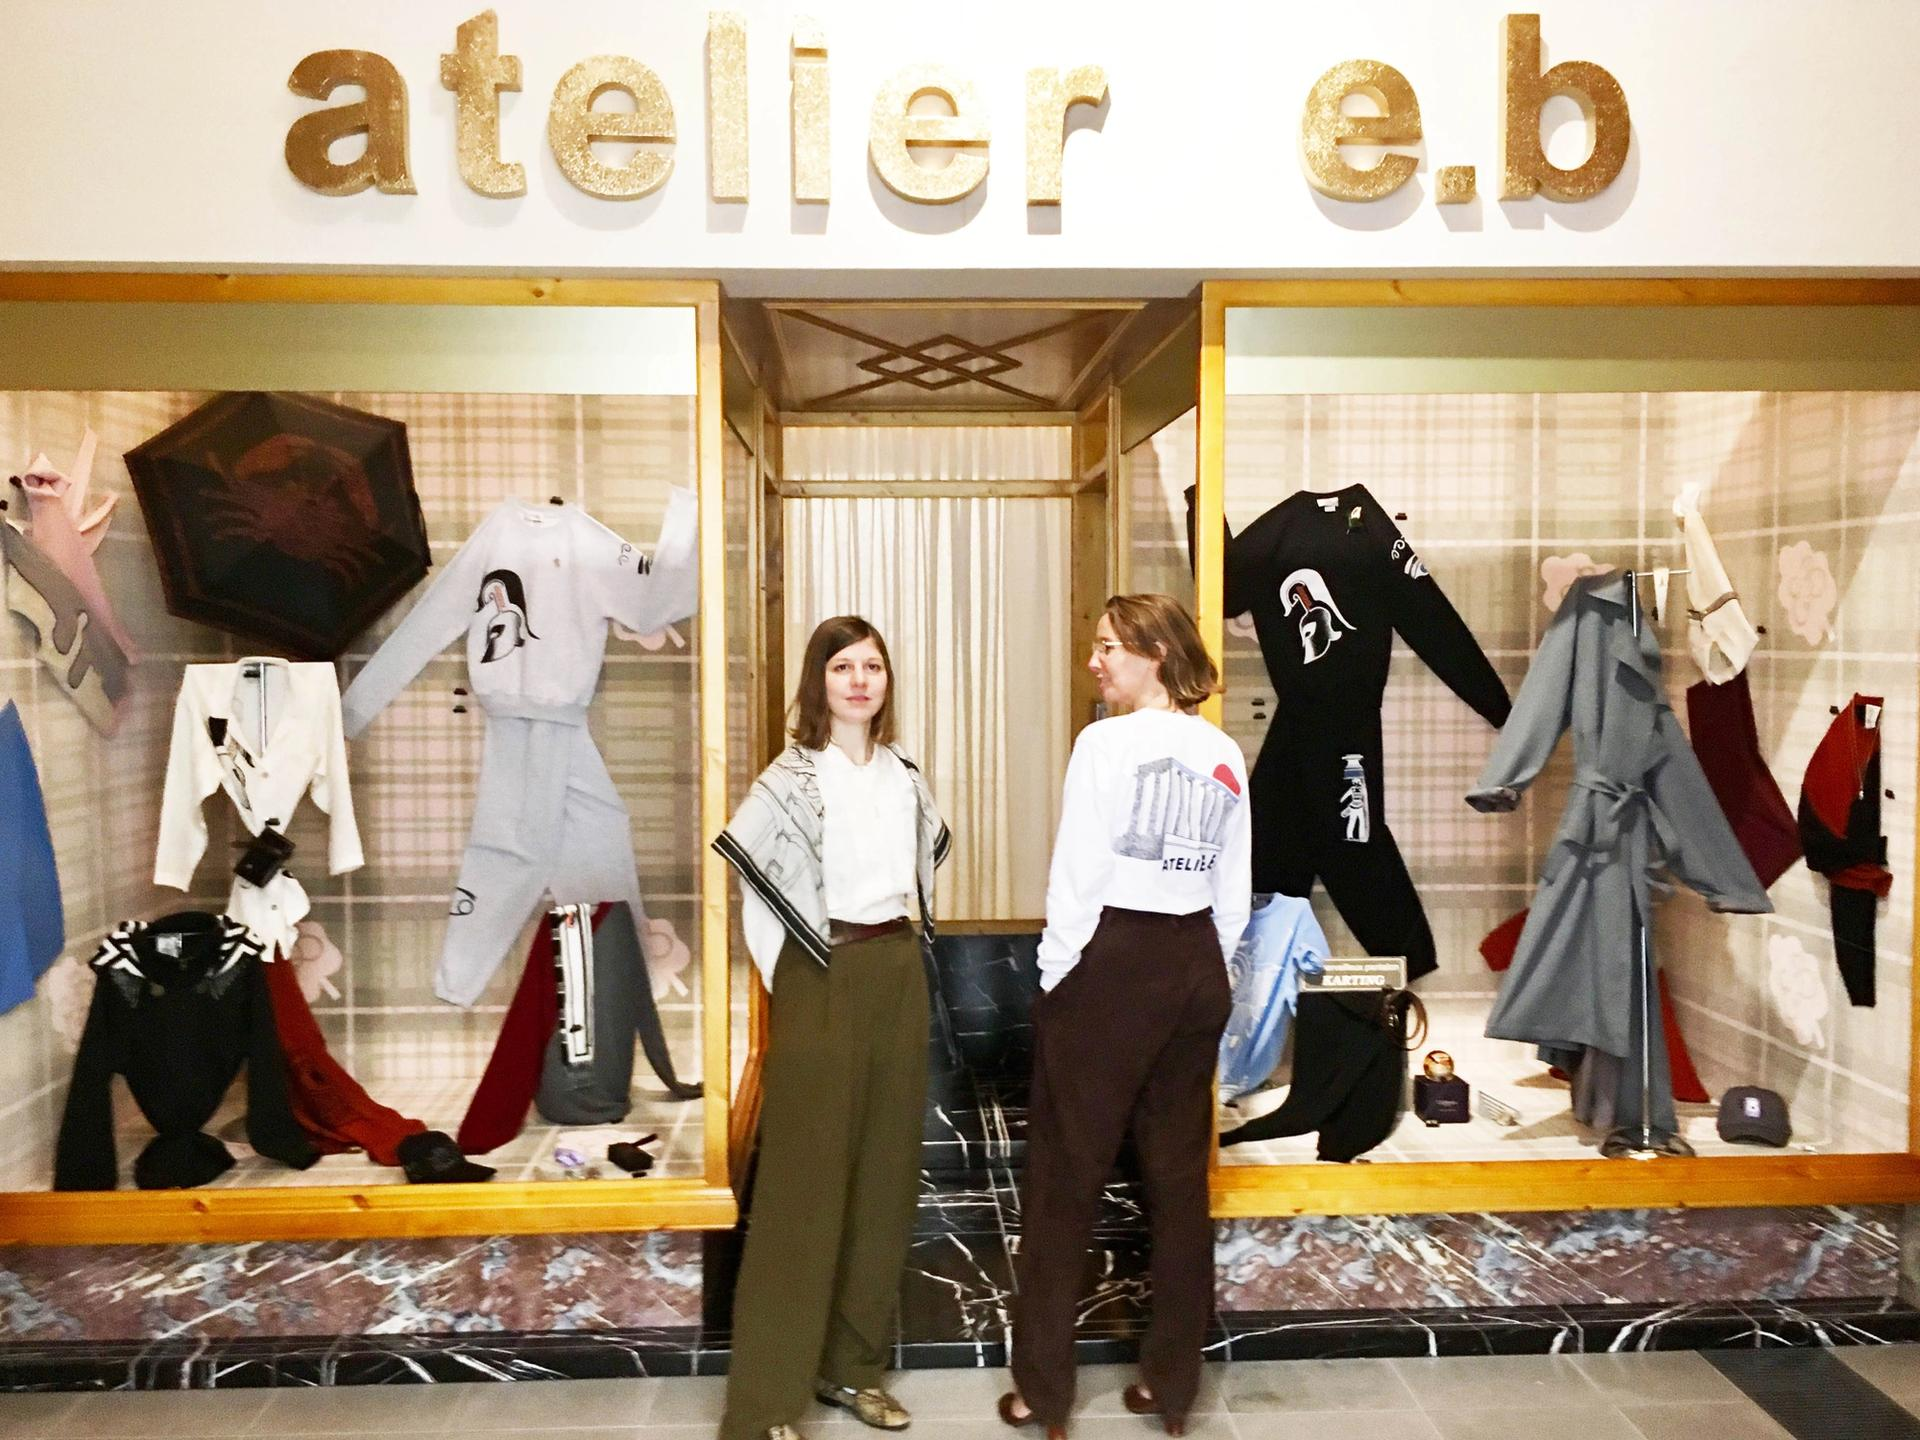 Atelier E.B is the name under which the designer Beca Lipscombe and the artist Lucy McKenzie sign their collaborative projects Photo: Louisa Buck